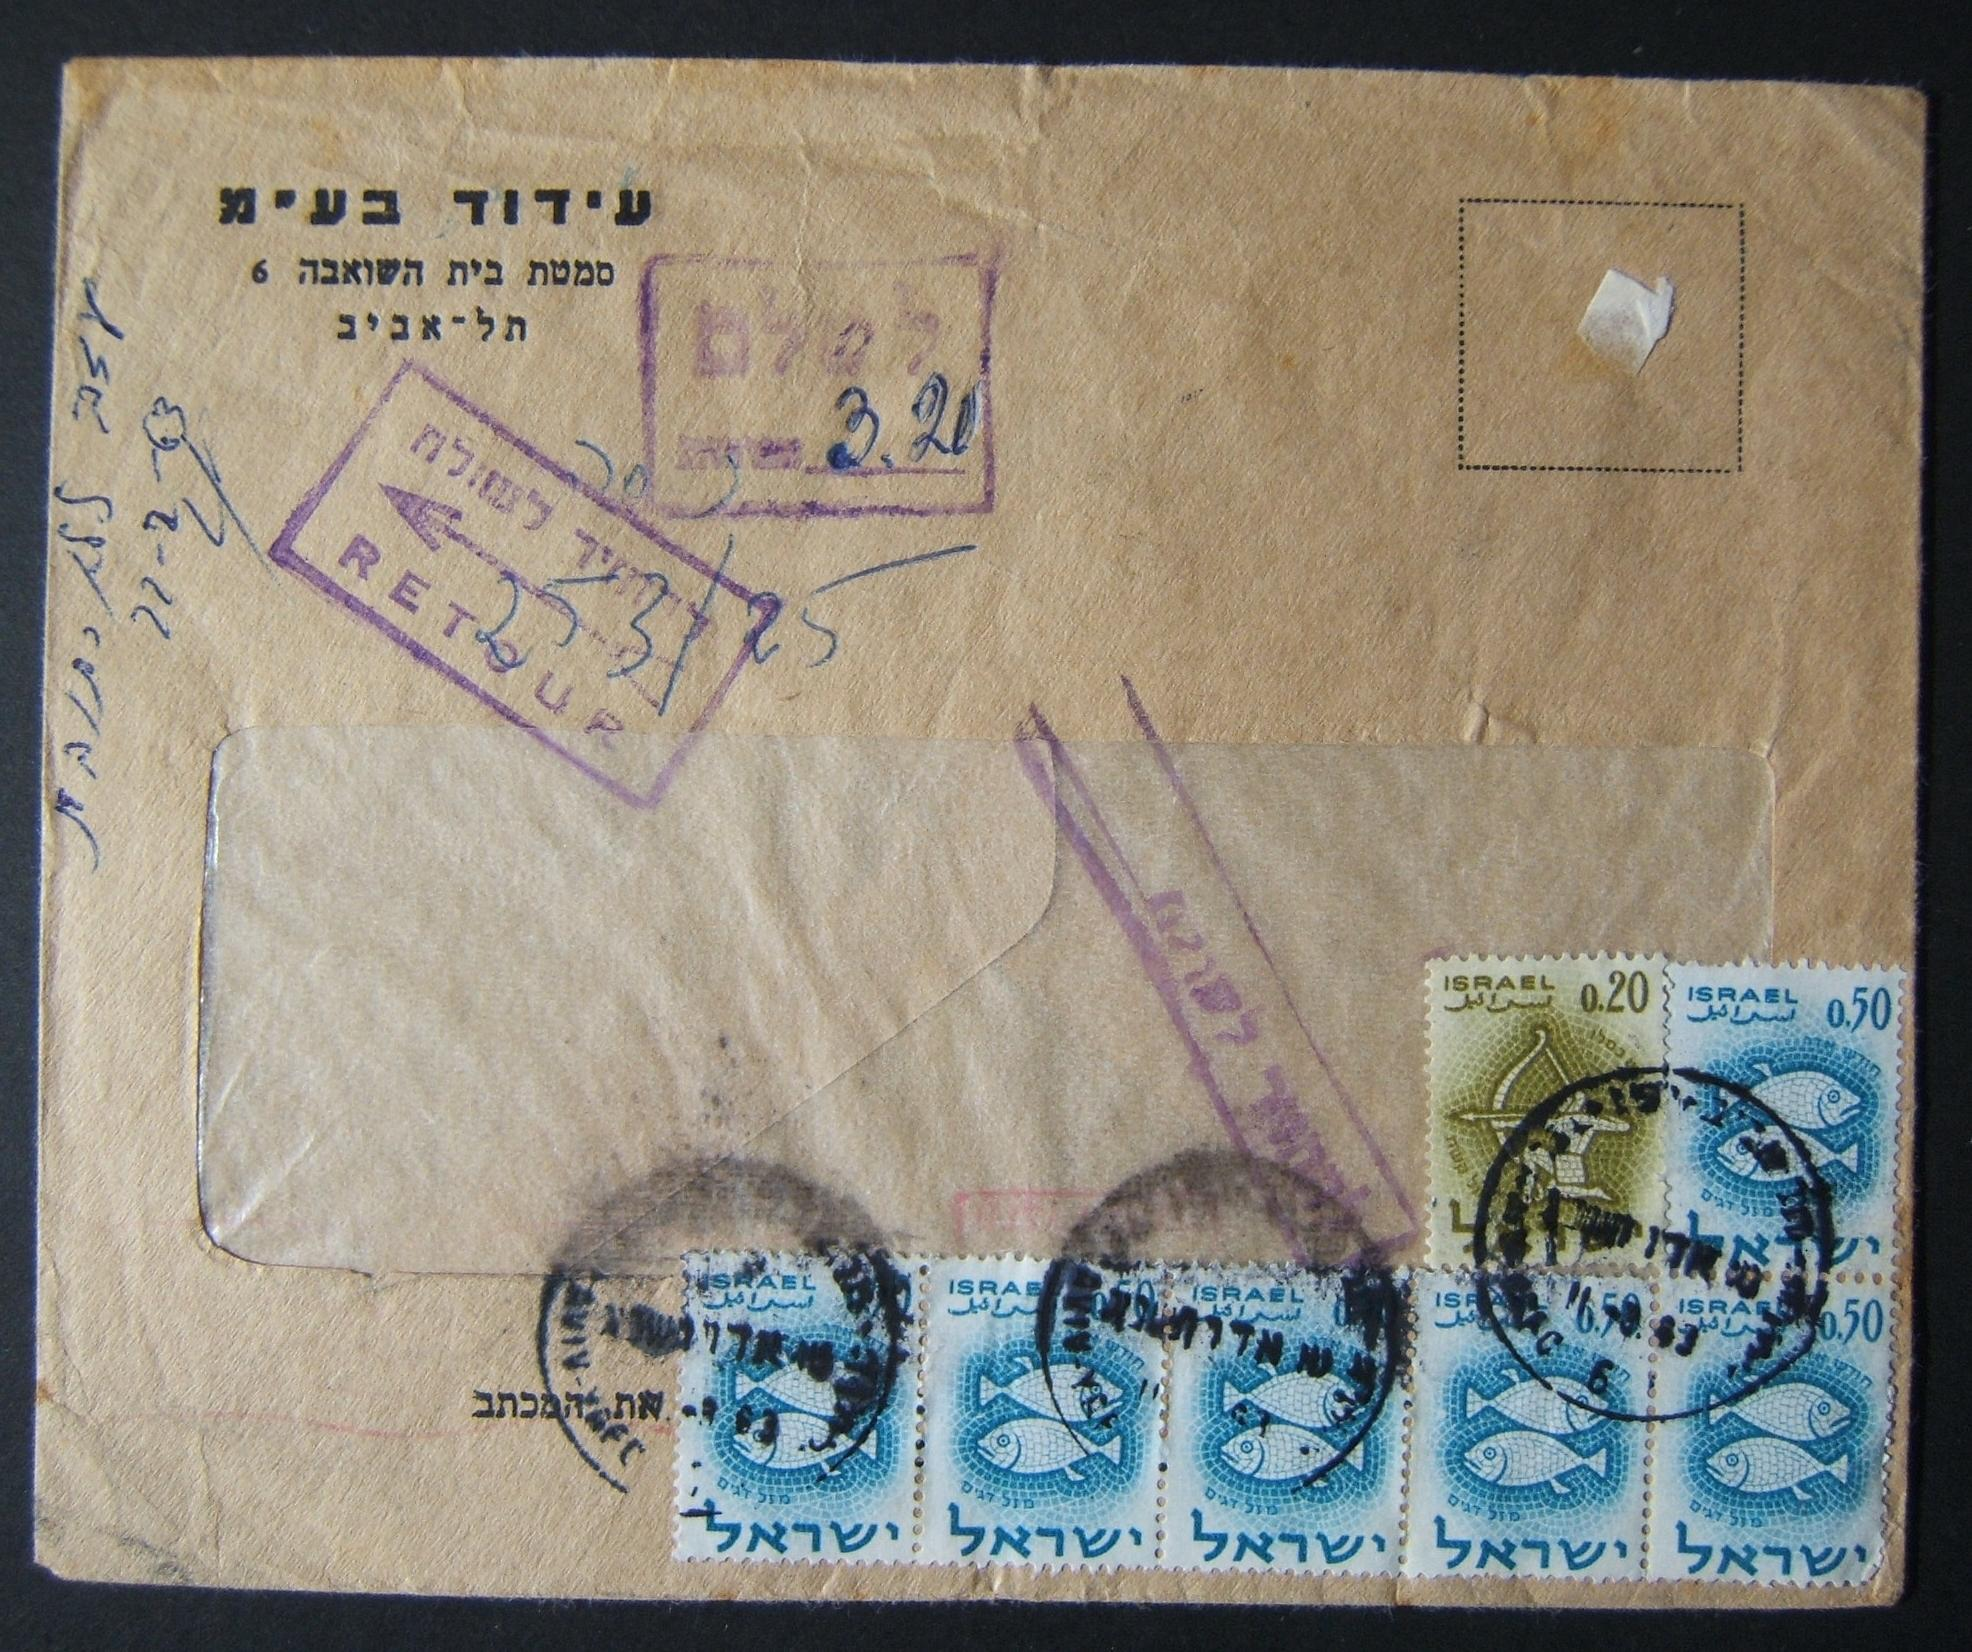 1963 domestic 'top of the pile' taxed franking: March 1963 printed matter commercial cover ex TLV branch of Idud Ltd. franked by machine prepayment at the DO-11 period 8 Ag PM rate